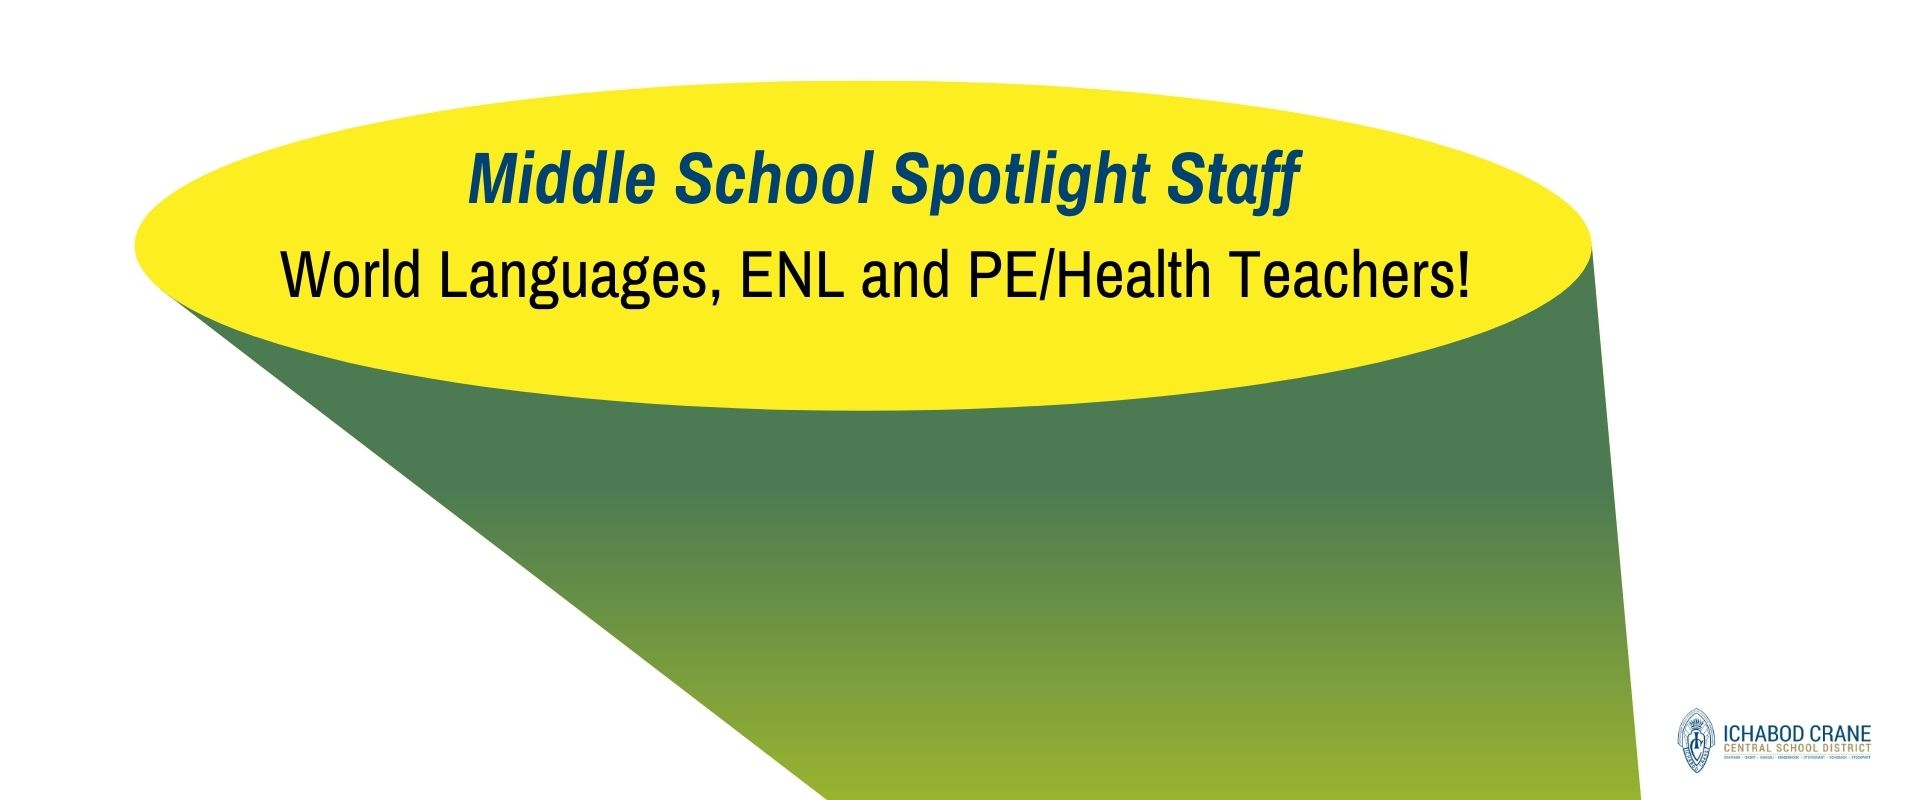 Middle School Spotlight Staff